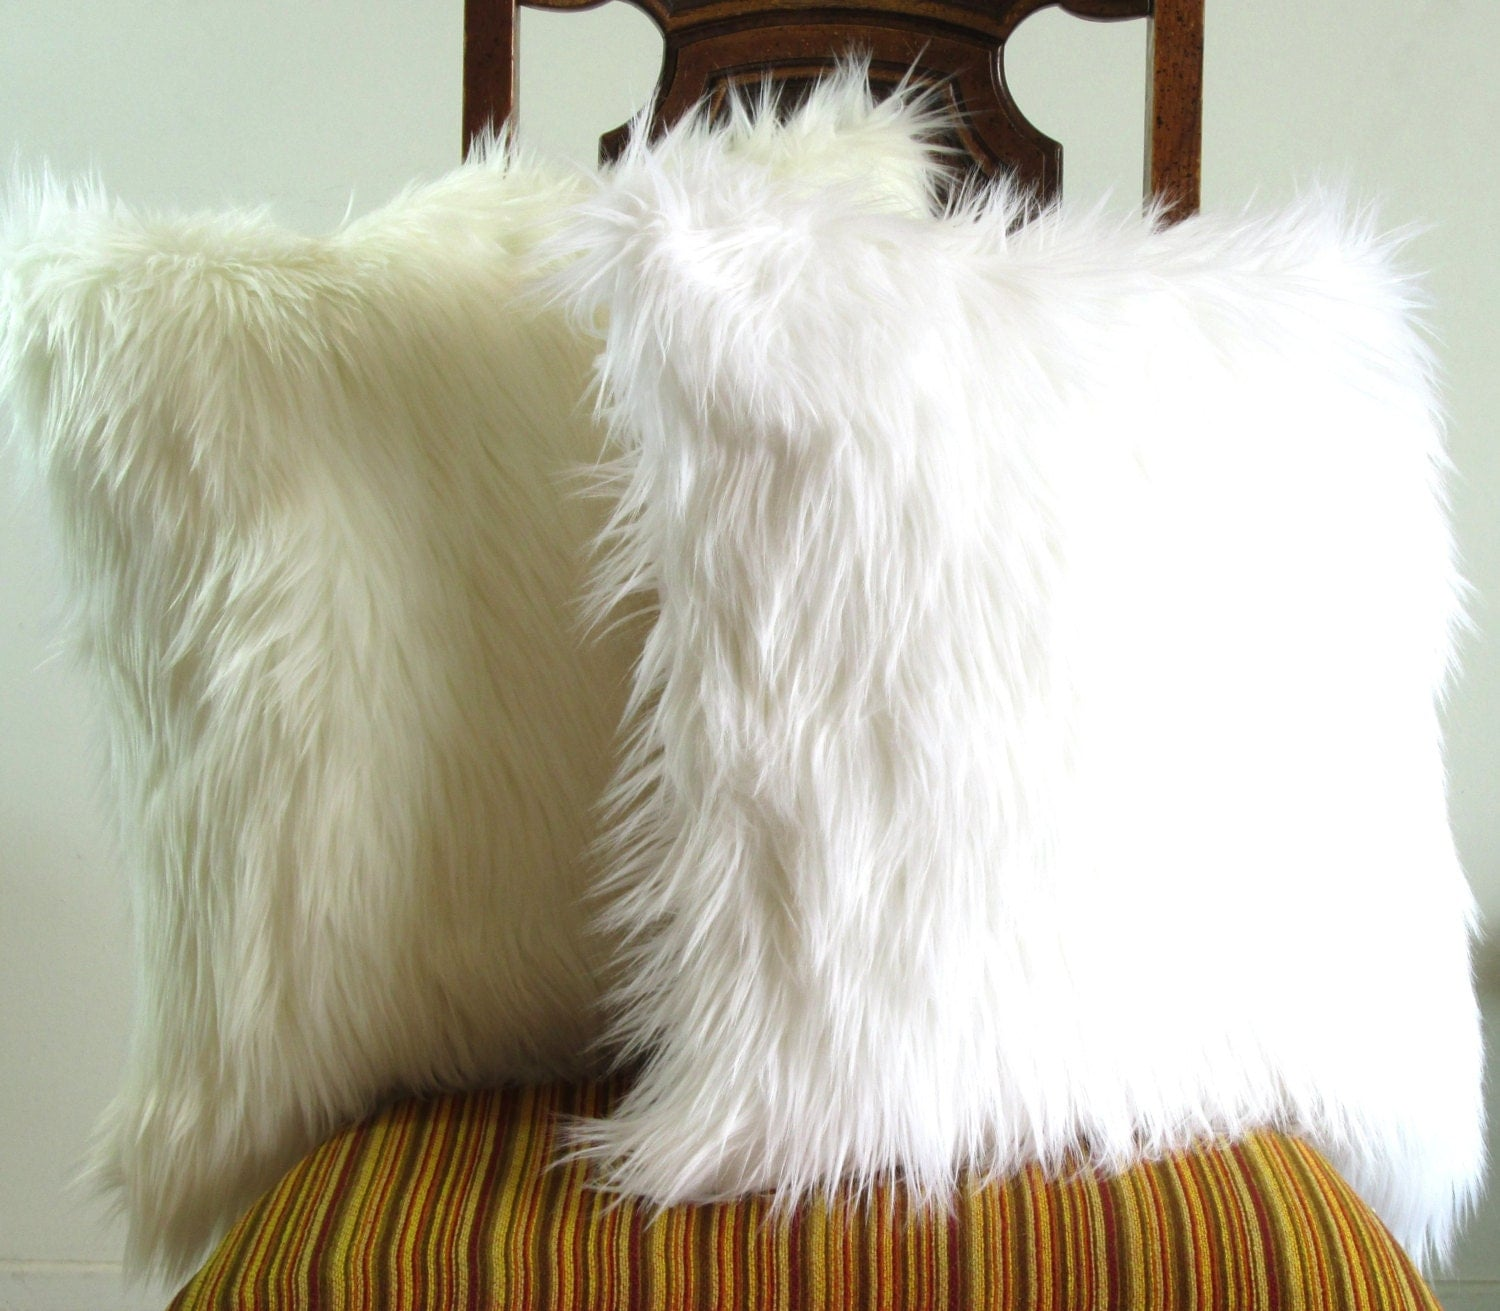 Our Fluffy cushion is the perfect accessory to add a depth of texture and design to your living area or bedroom. Dimensions: 45cm x 45cm. Soft fluffy texture. Side zip downloadsolutionspa5tr.gq not included/5(21).